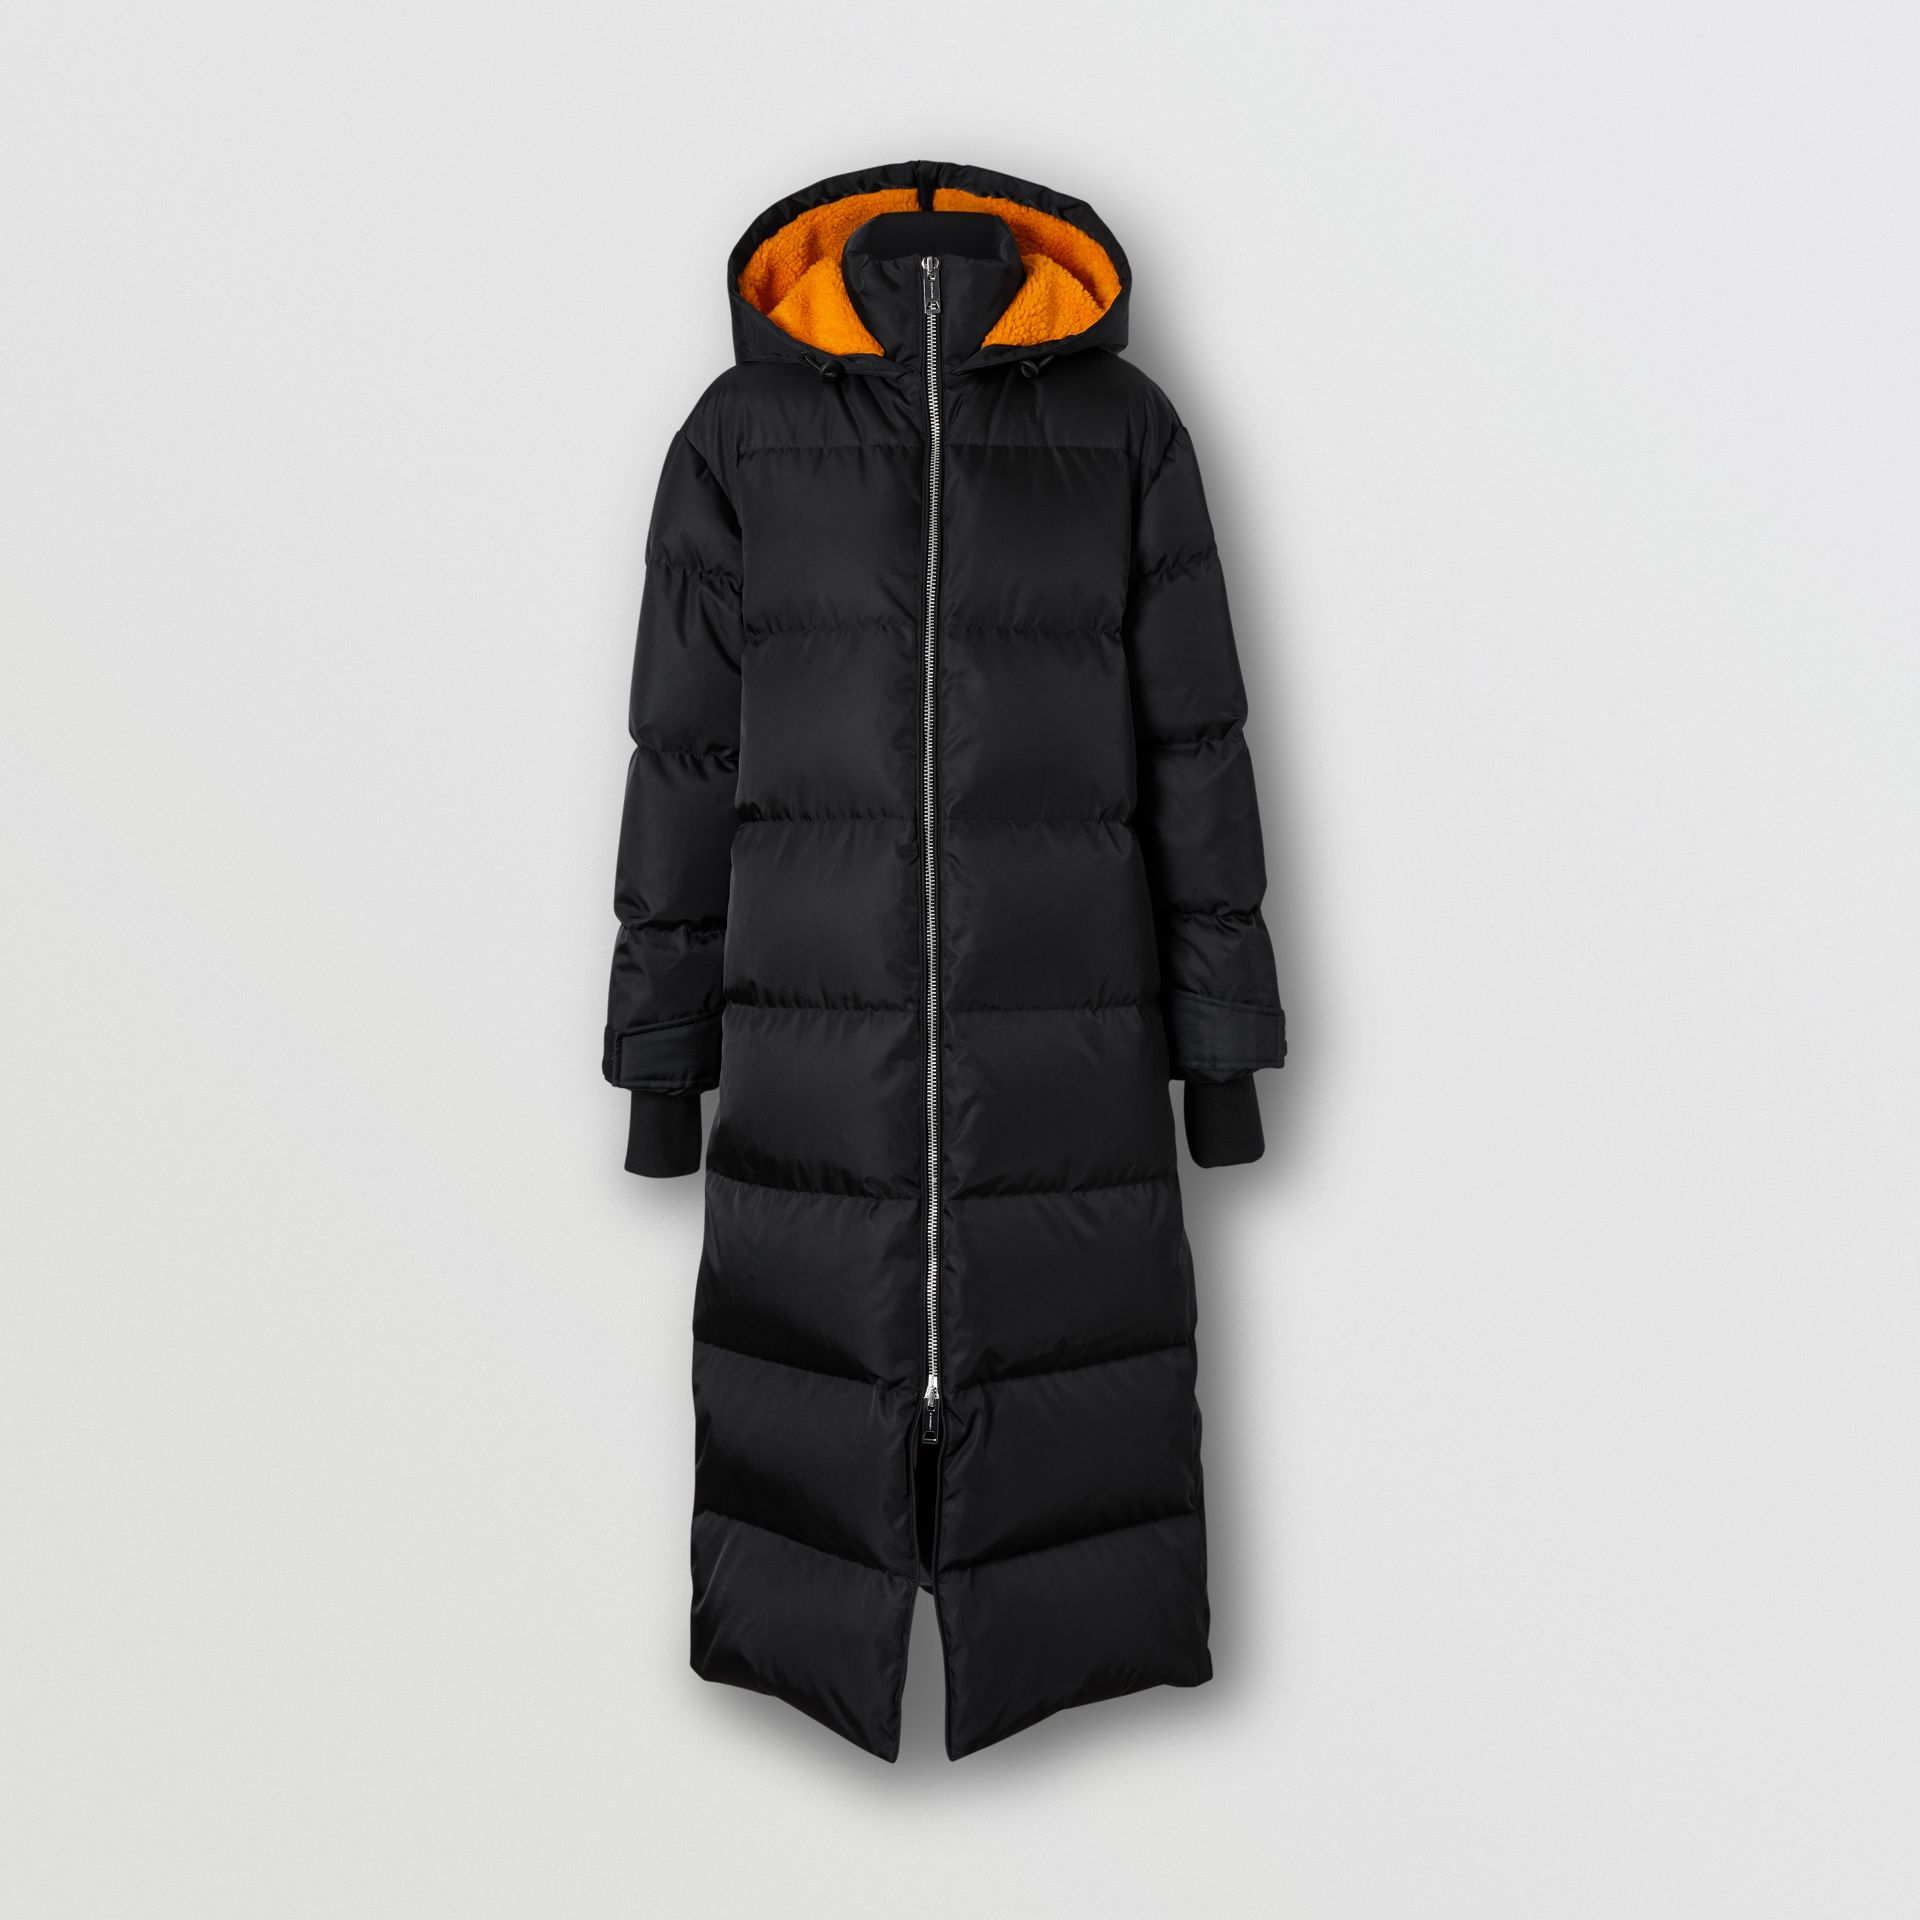 Logo Detail ECONYL® Puffer Coat in Black/orange - Women | Burberry Canada - gallery image 3